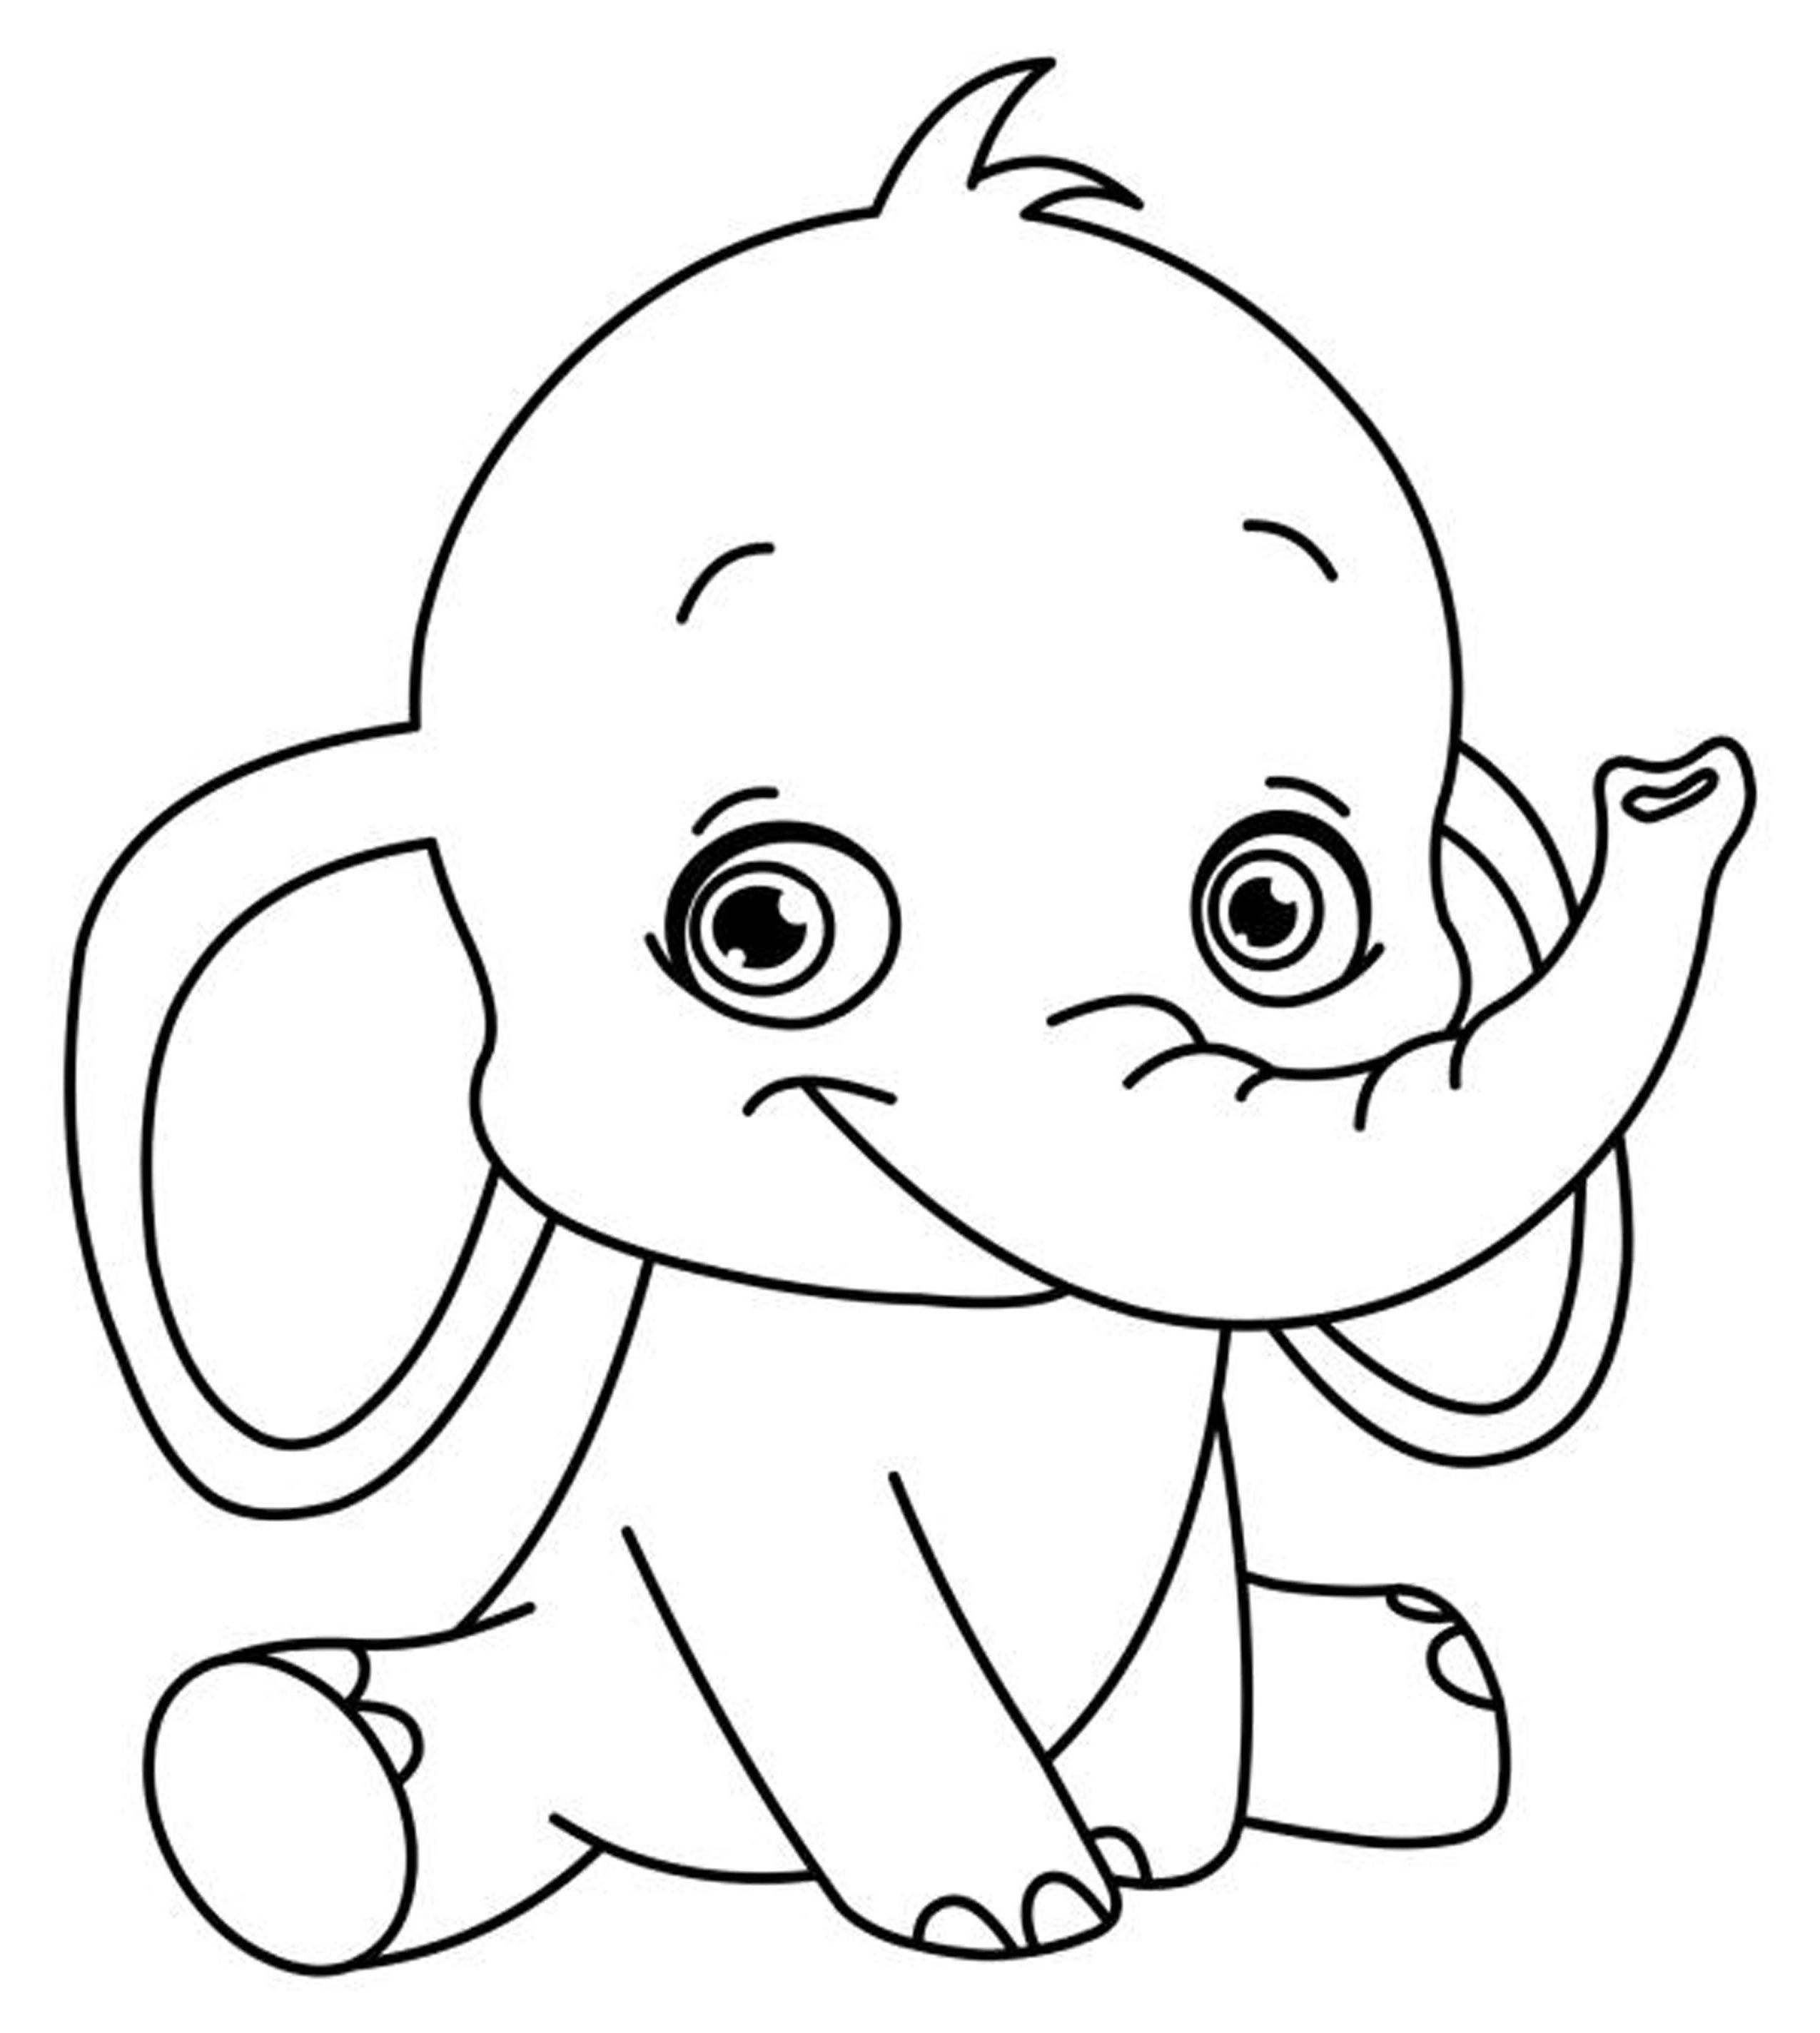 printable pictures to paint for kids kids drawing to print at getdrawings free download kids pictures to printable for paint